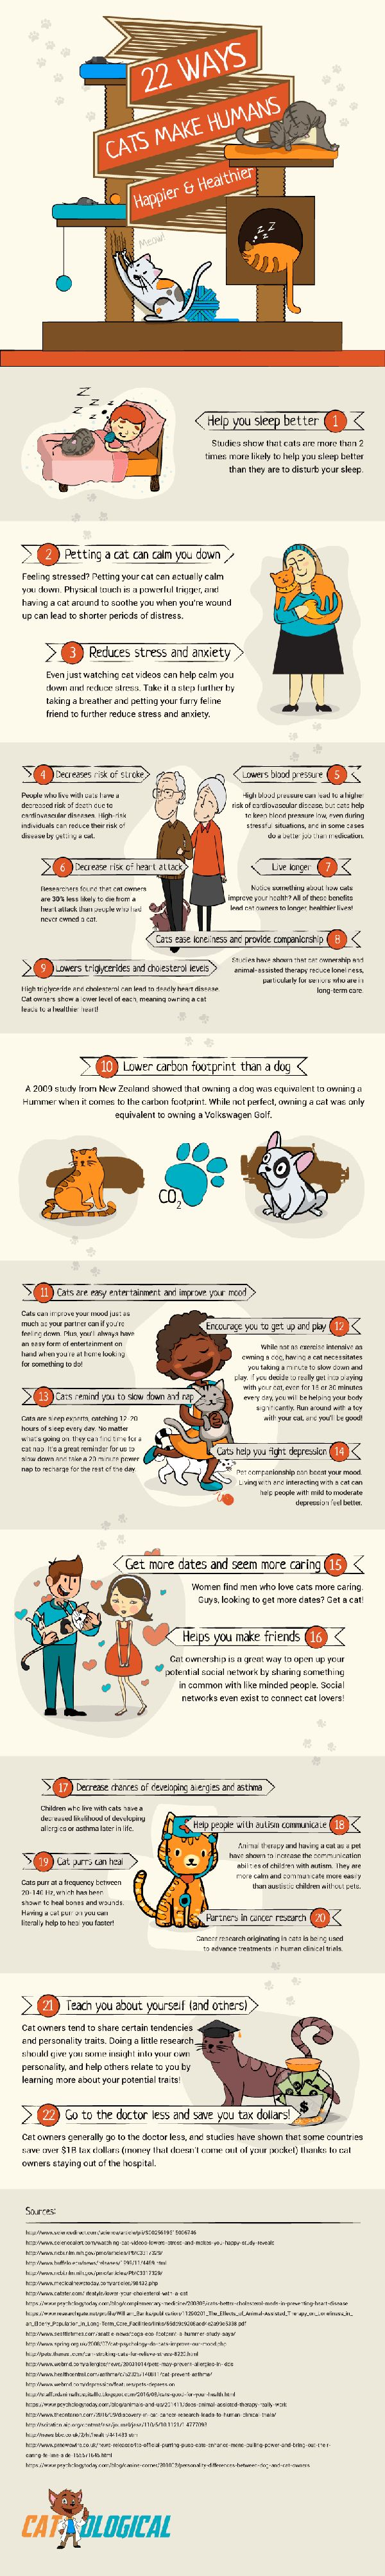 cat infographic - 22 ways that cats make you healthier and happier